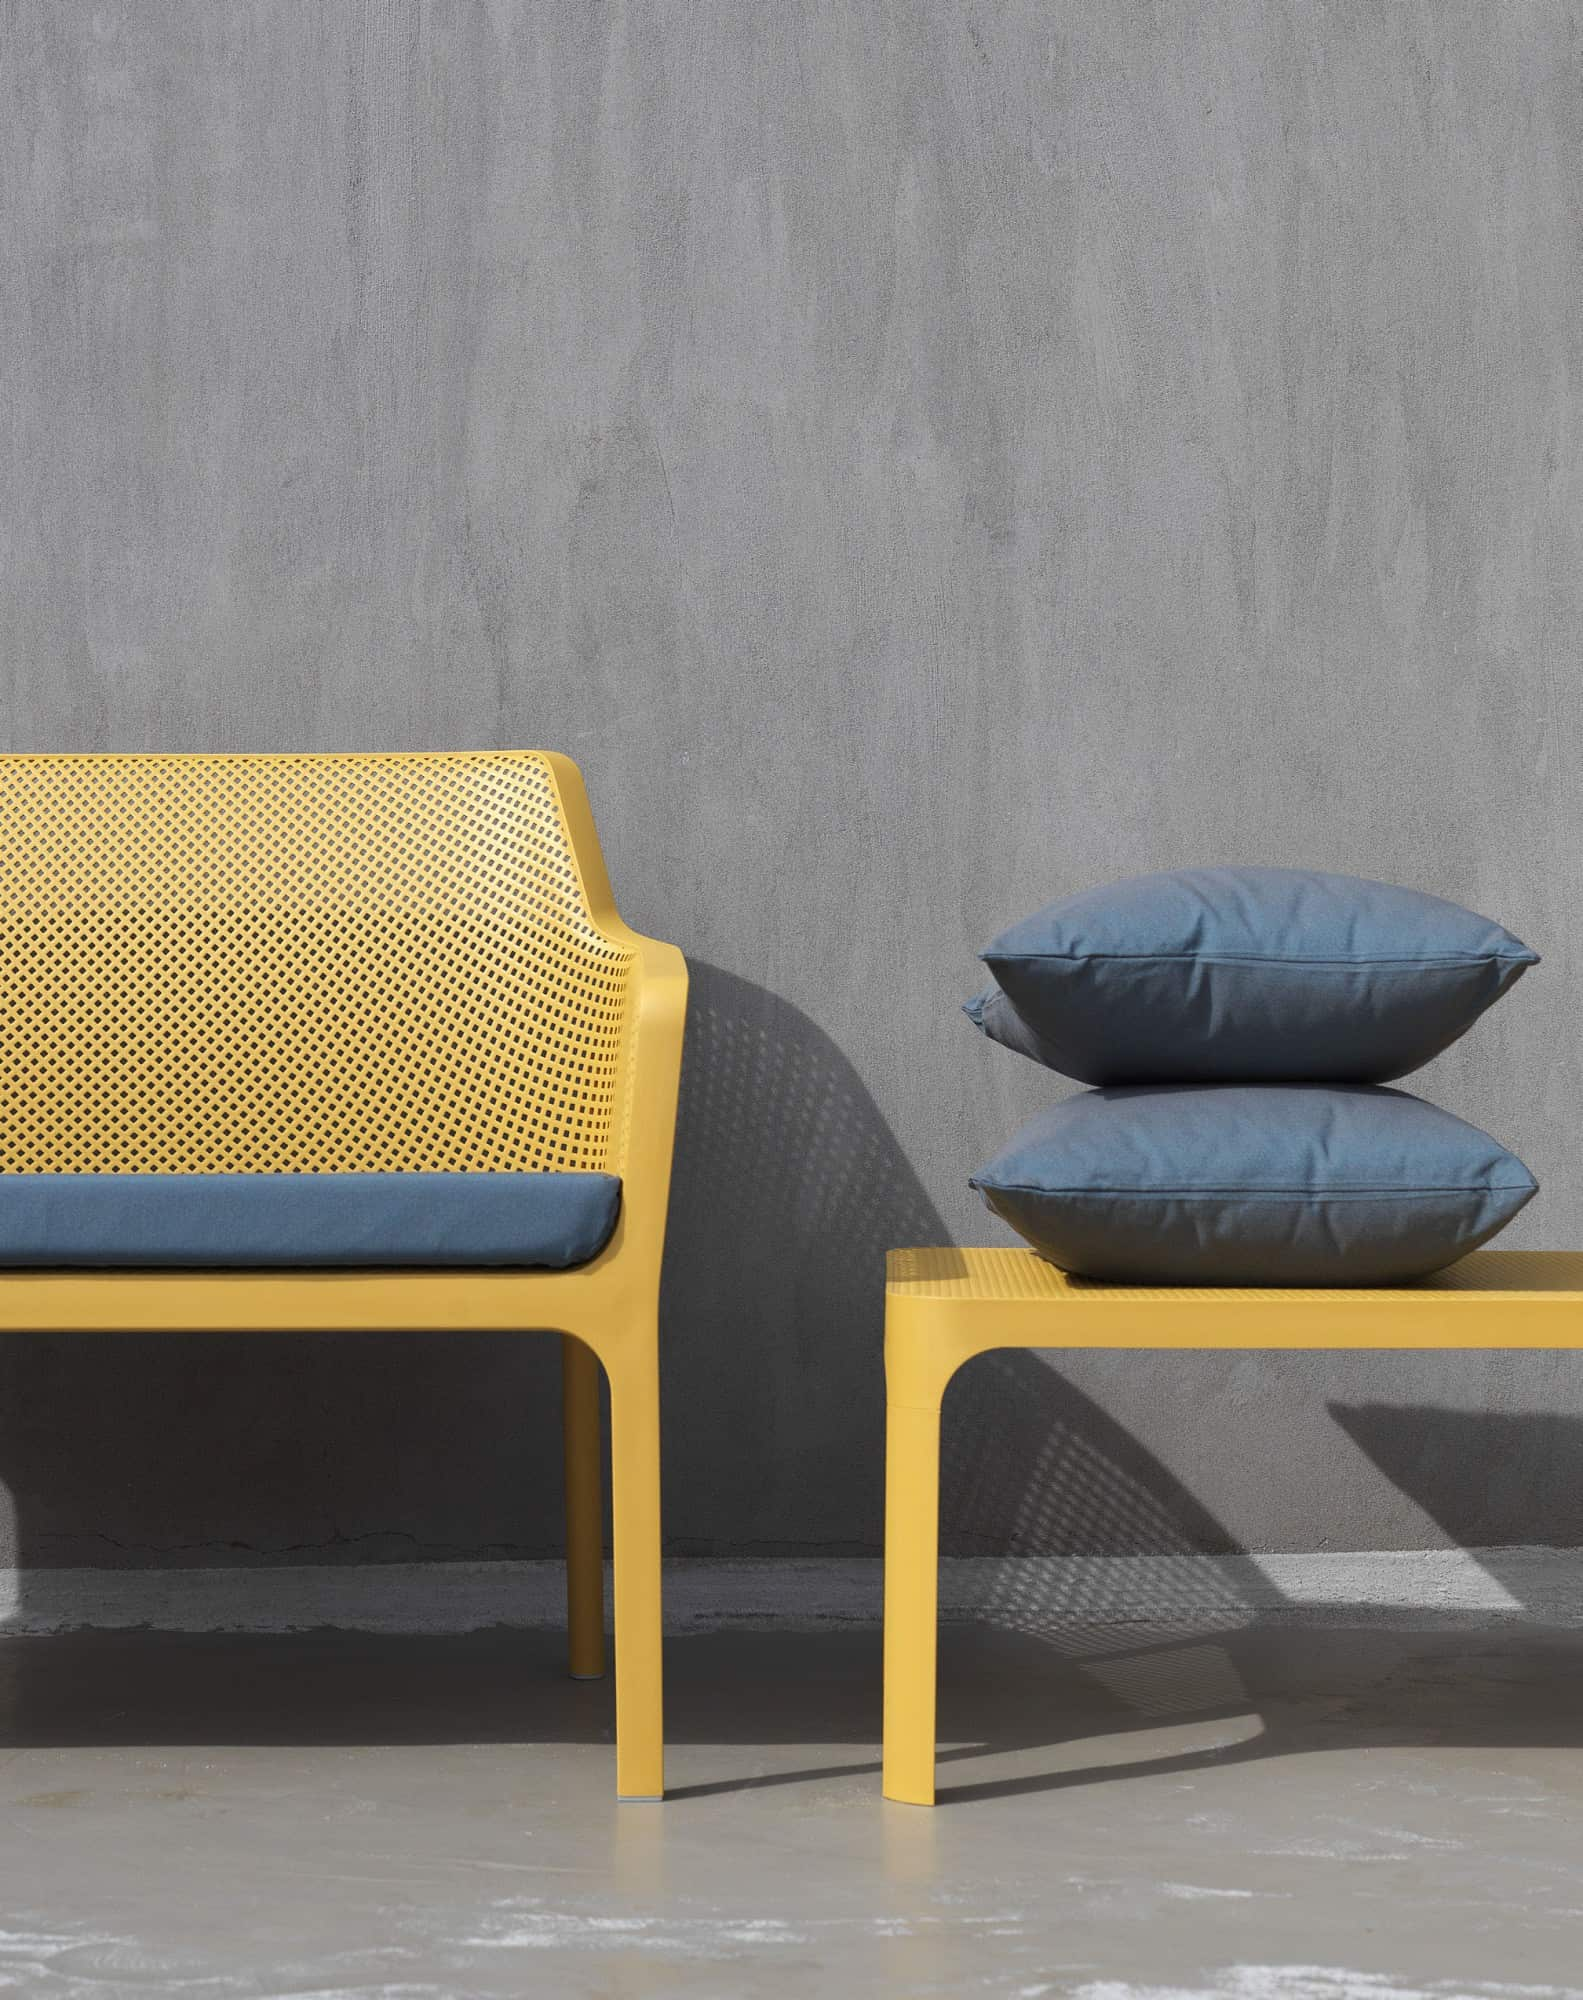 Net outdoor furniture - Bench and Table by Nardi